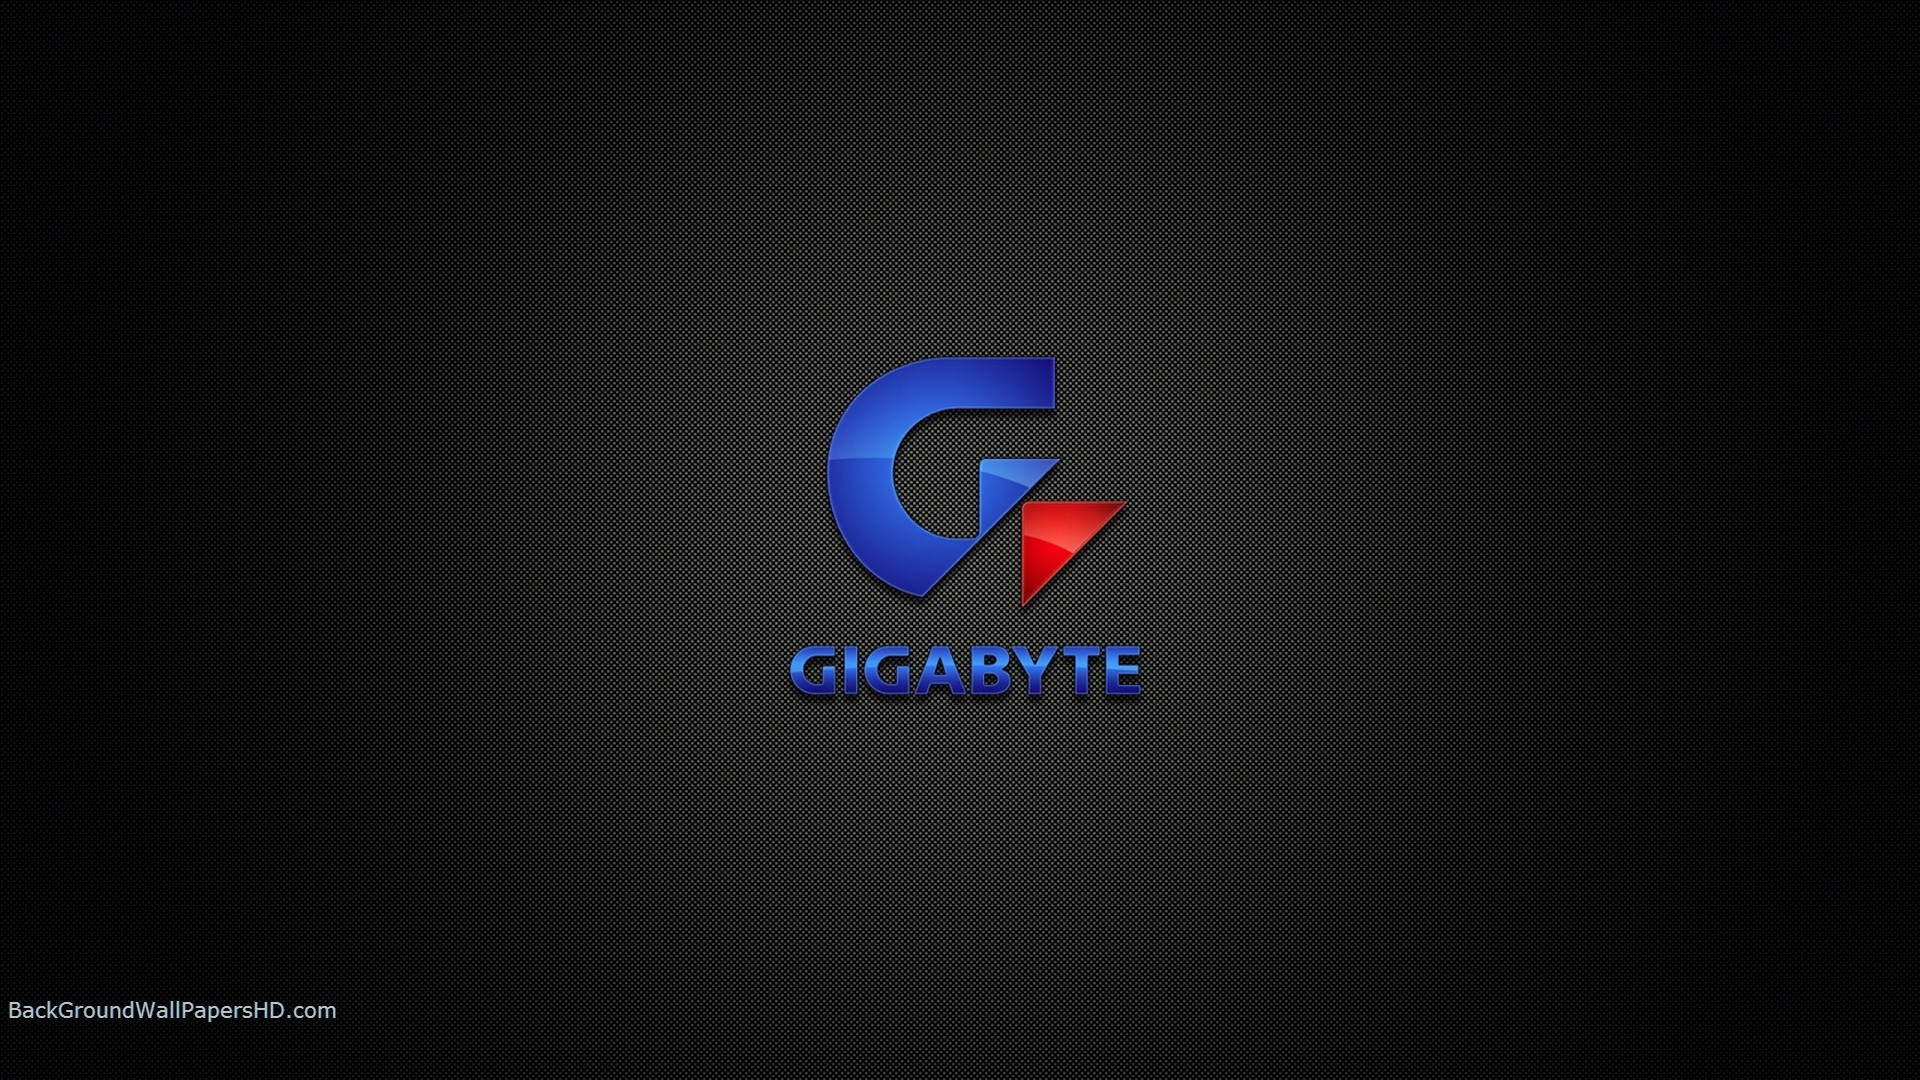 1920x1080 Gigabyte Logo Wallpaper 10240 HD